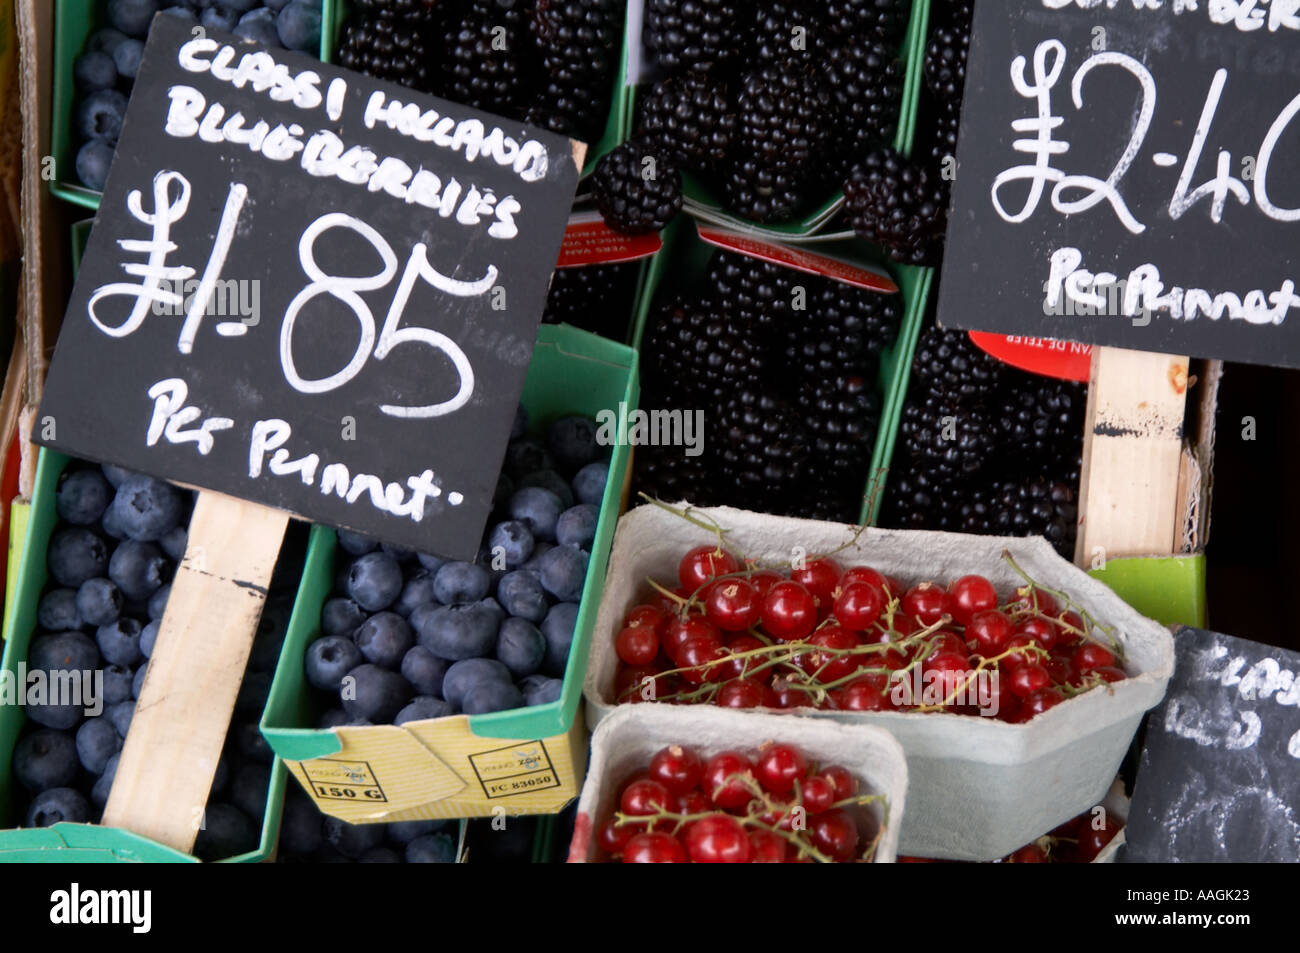 fruit berry berries market stall price cost blueberry blueberries